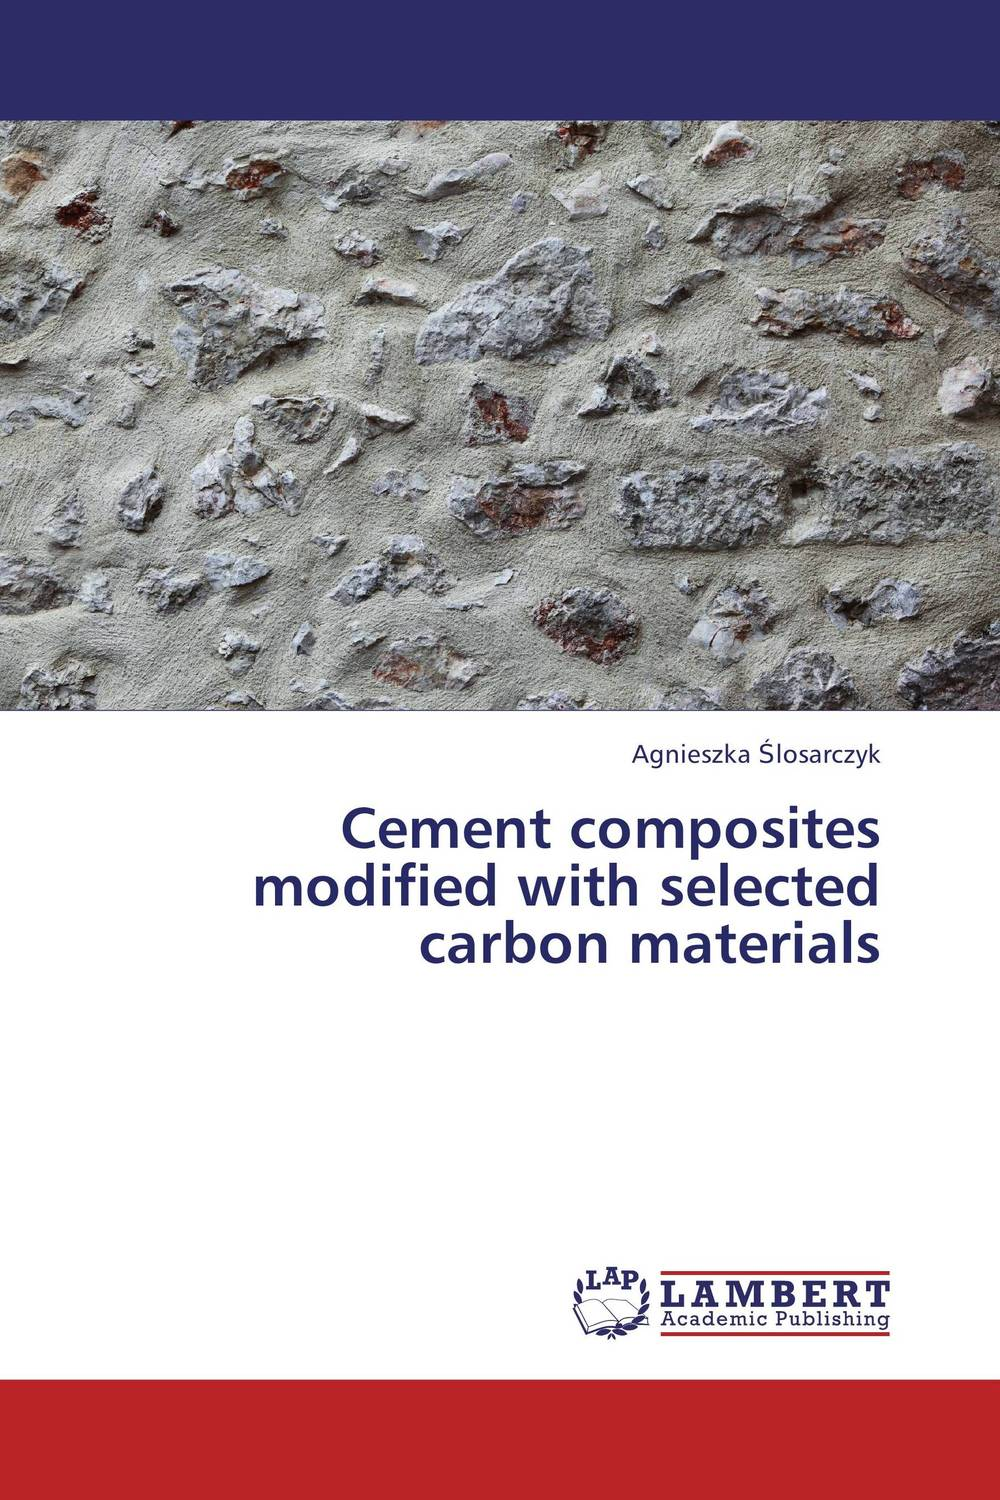 Cement composites modified with selected carbon materials buckling of composites